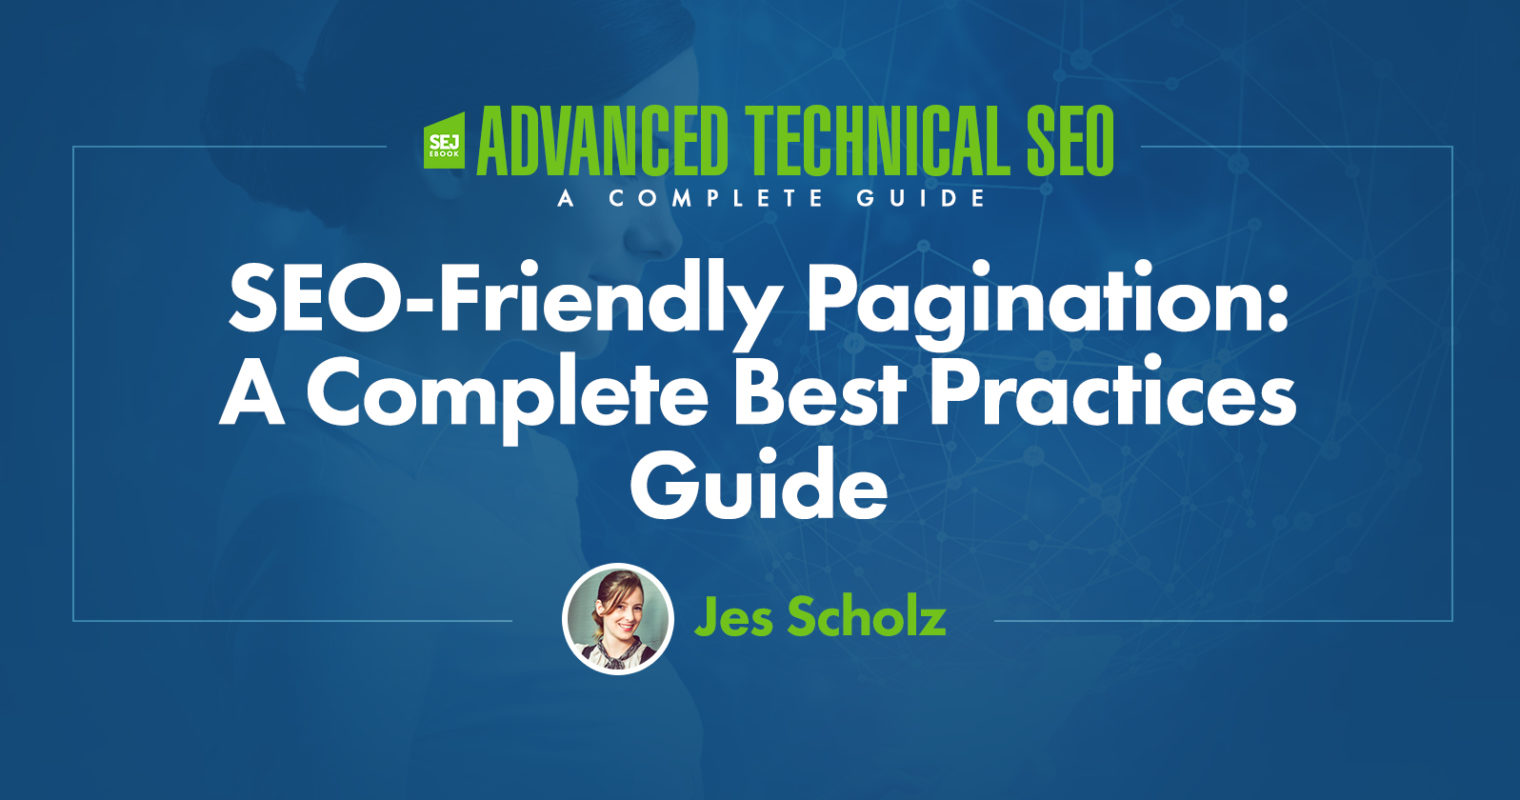 SEO-Friendly Pagination: A Complete Best Practices Guide